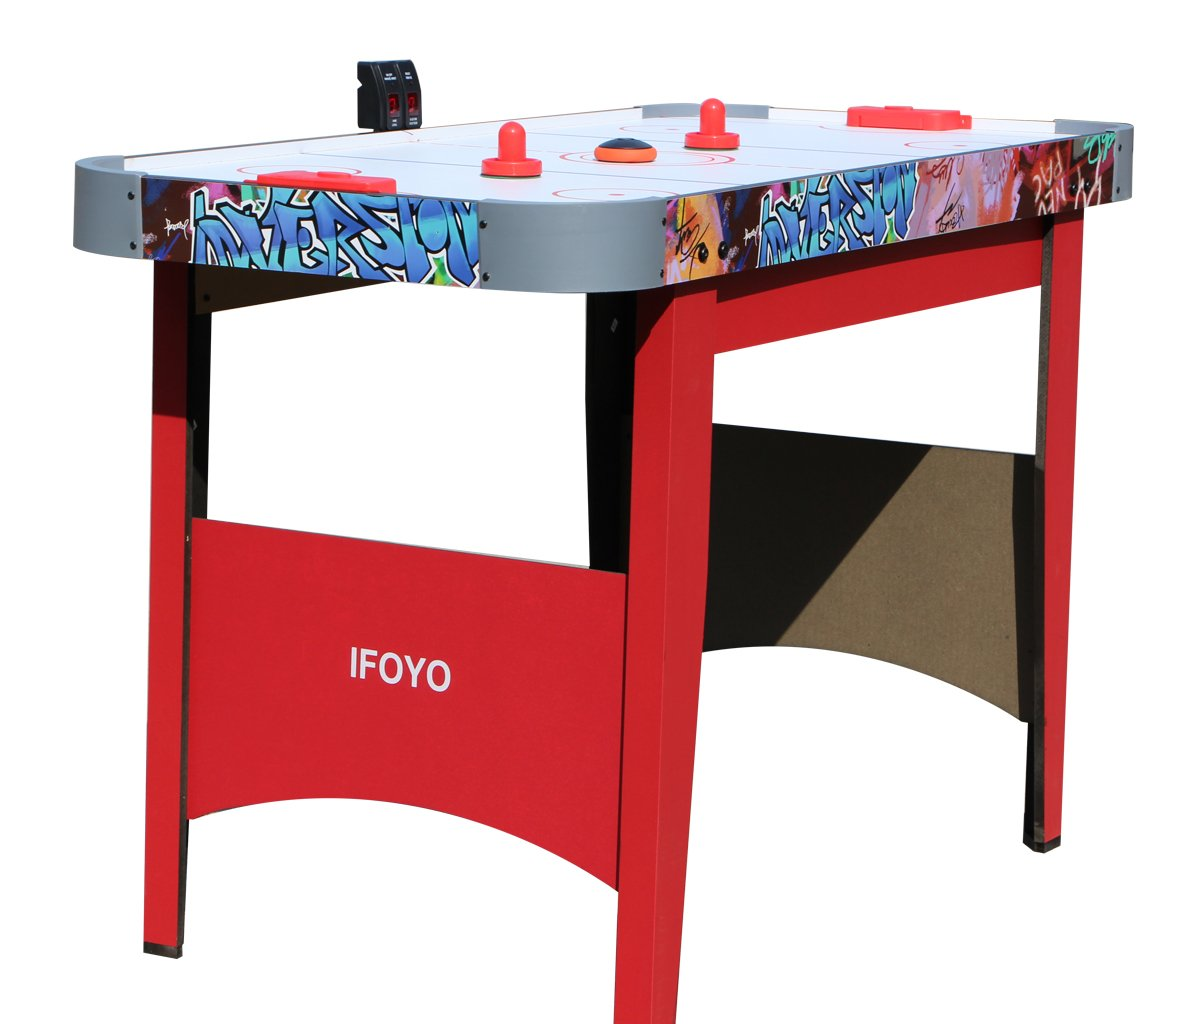 4ft Ice Hockey Table Set with Table Top for Kids and Game Room Father's Day Gift